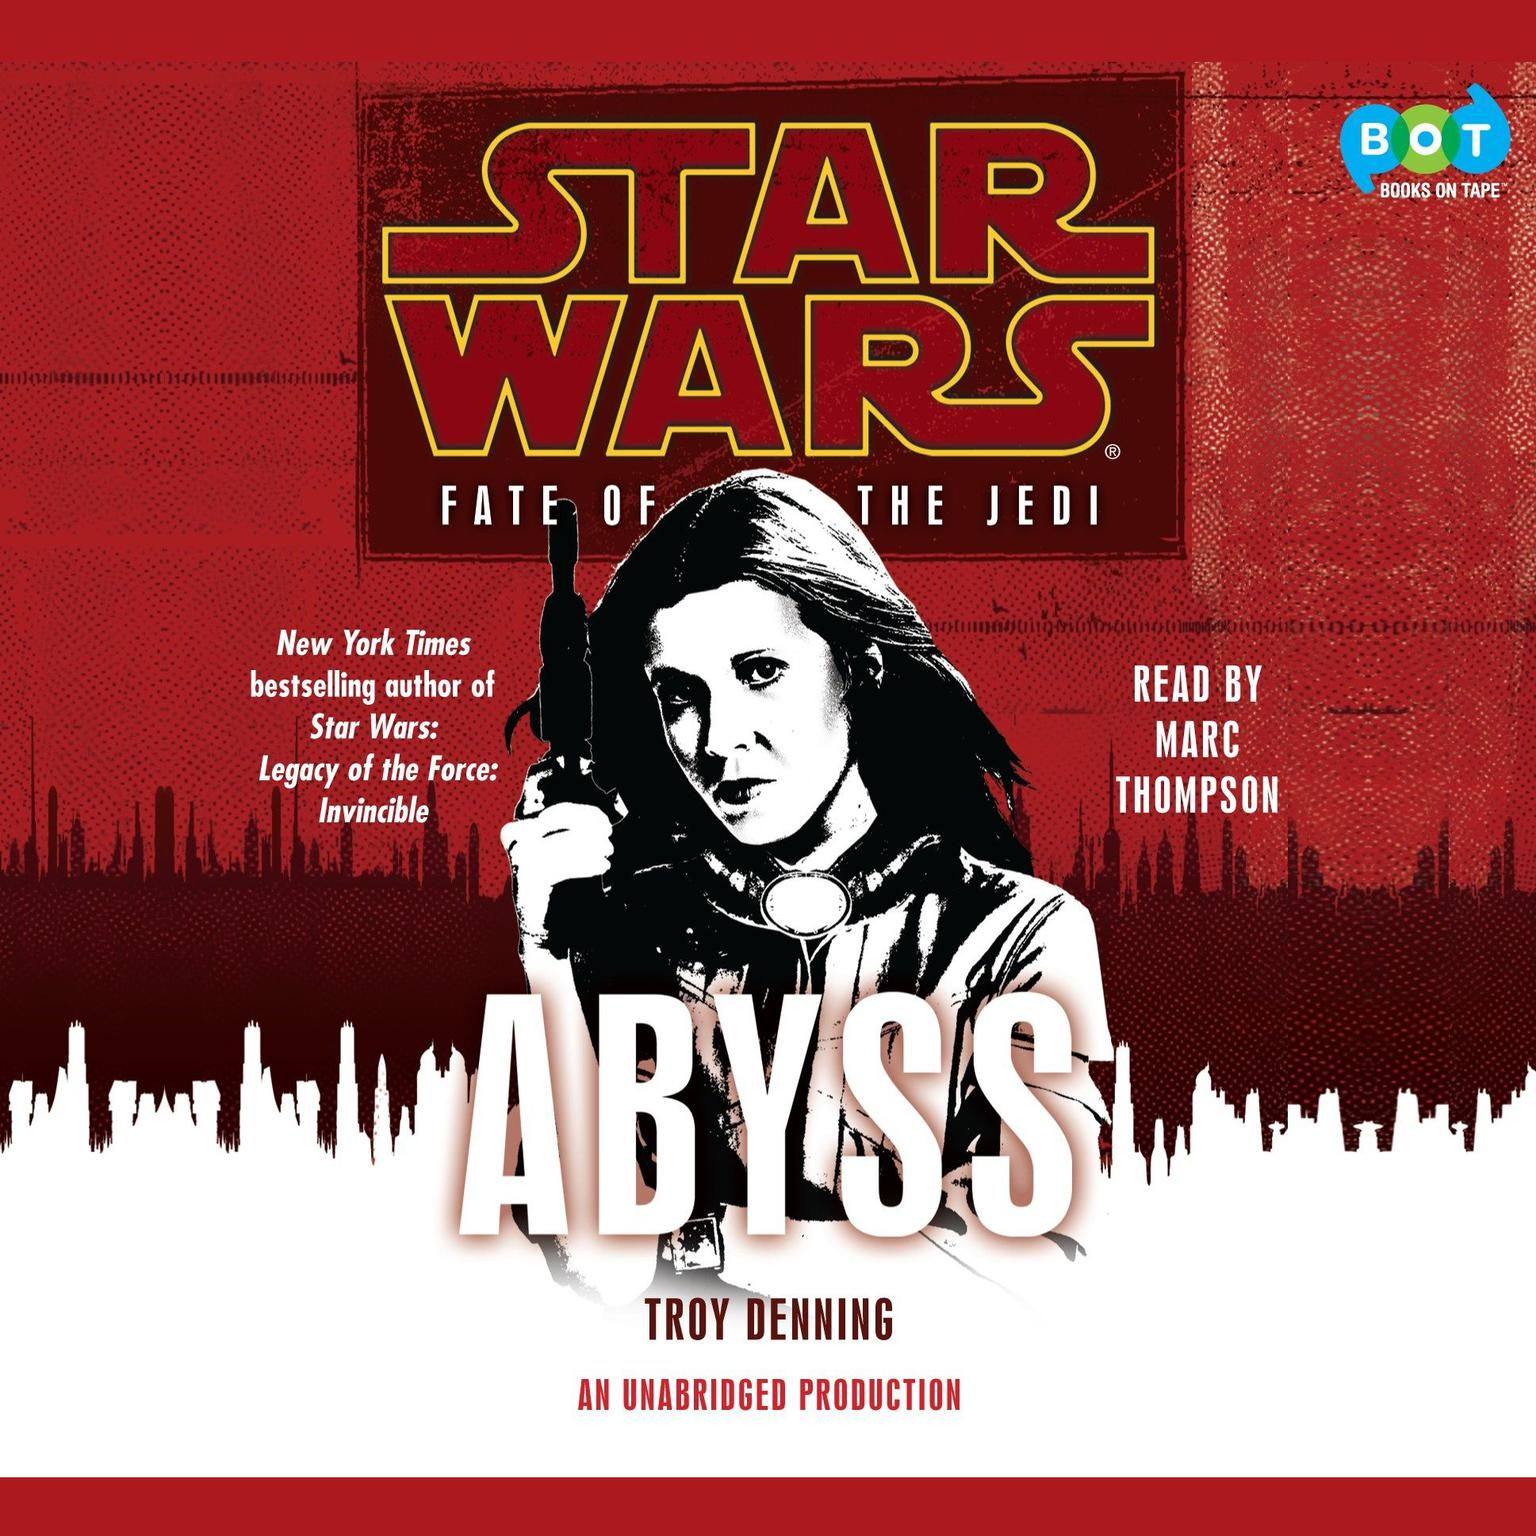 Printable Abyss: Star Wars (Fate of the Jedi) Audiobook Cover Art